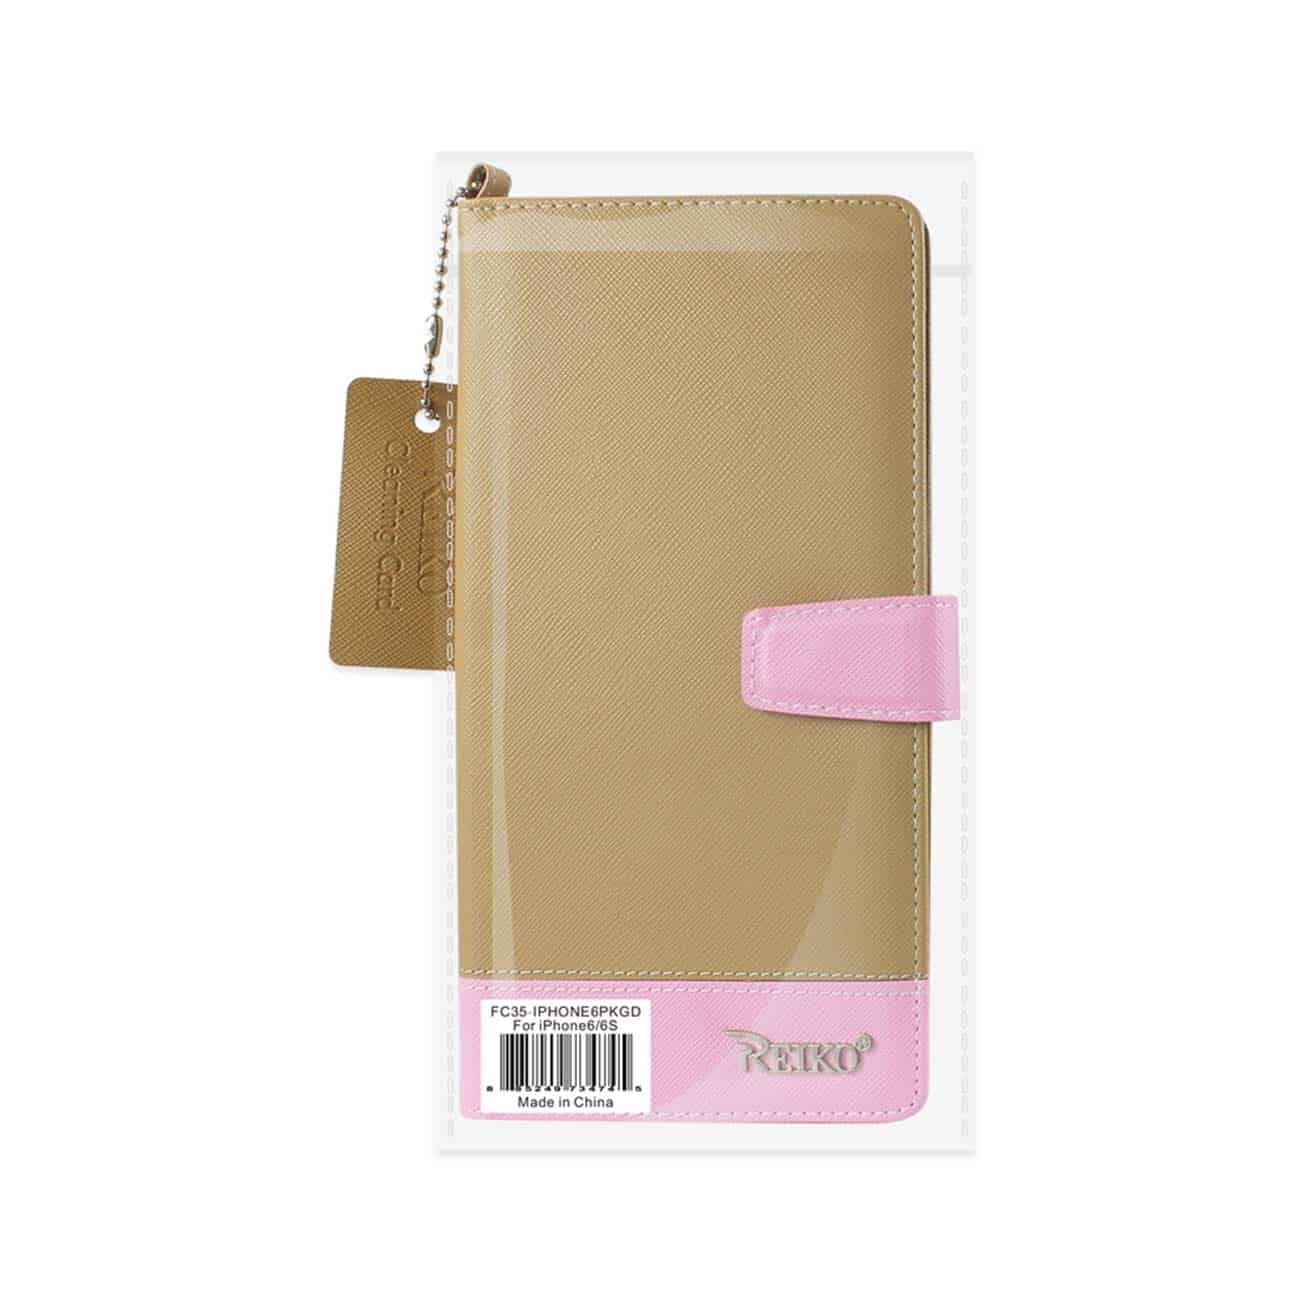 IPHONE 6/ 6S TWO TONE SUPER WALLET CASE WITH MULTIPLE CARD SLOTS IN PINK GOLD